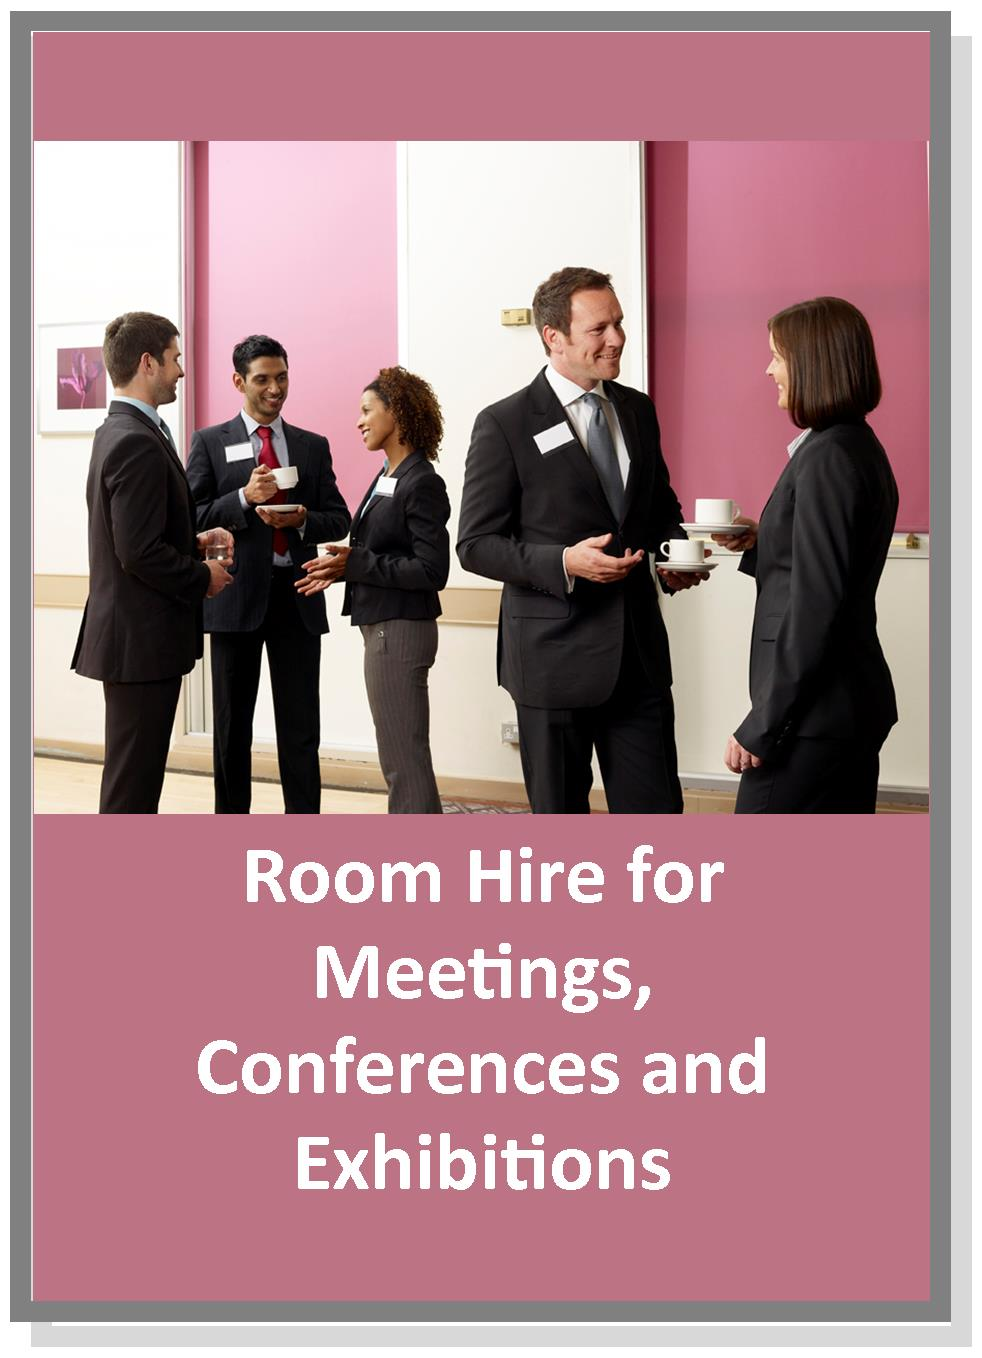 Business, Room hire